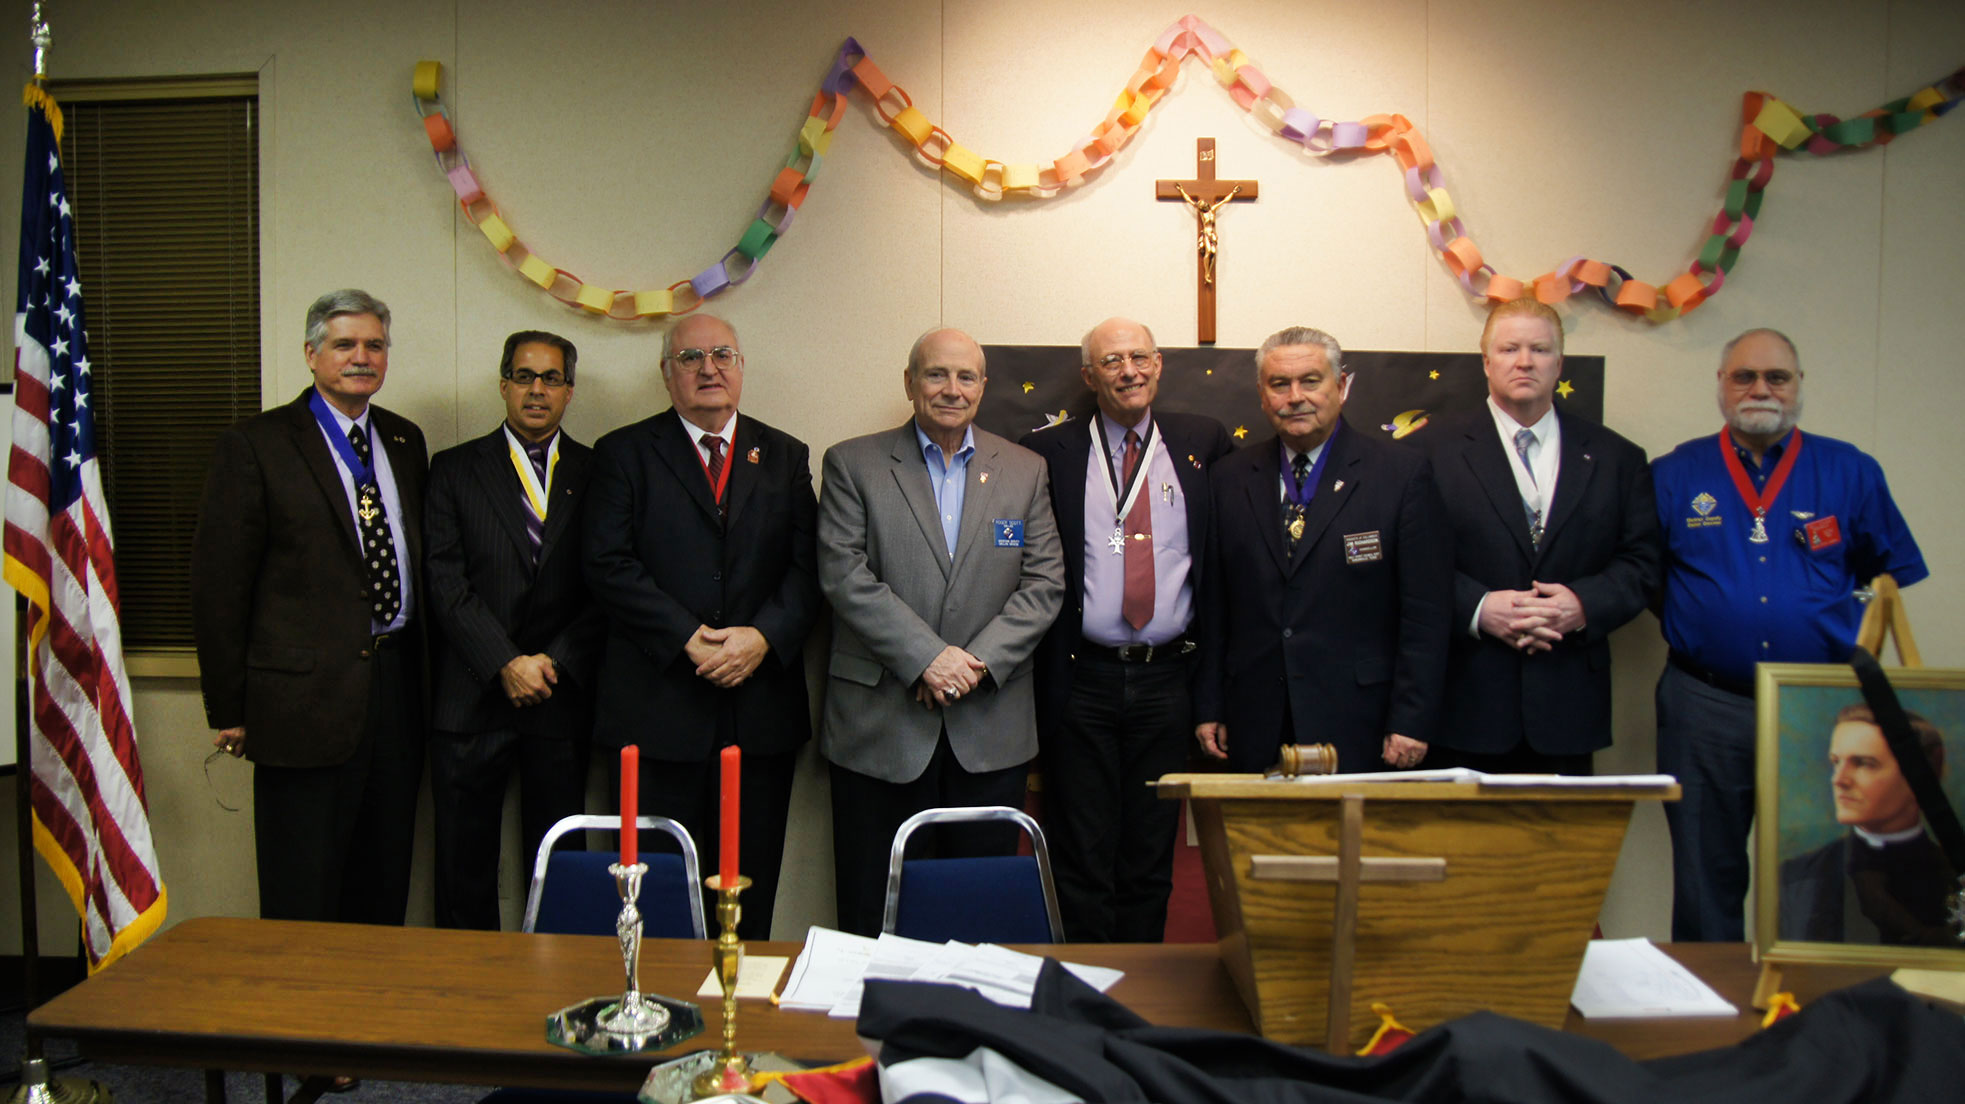 Knights of Columbus - Evangelization - Catholic Answers Forums